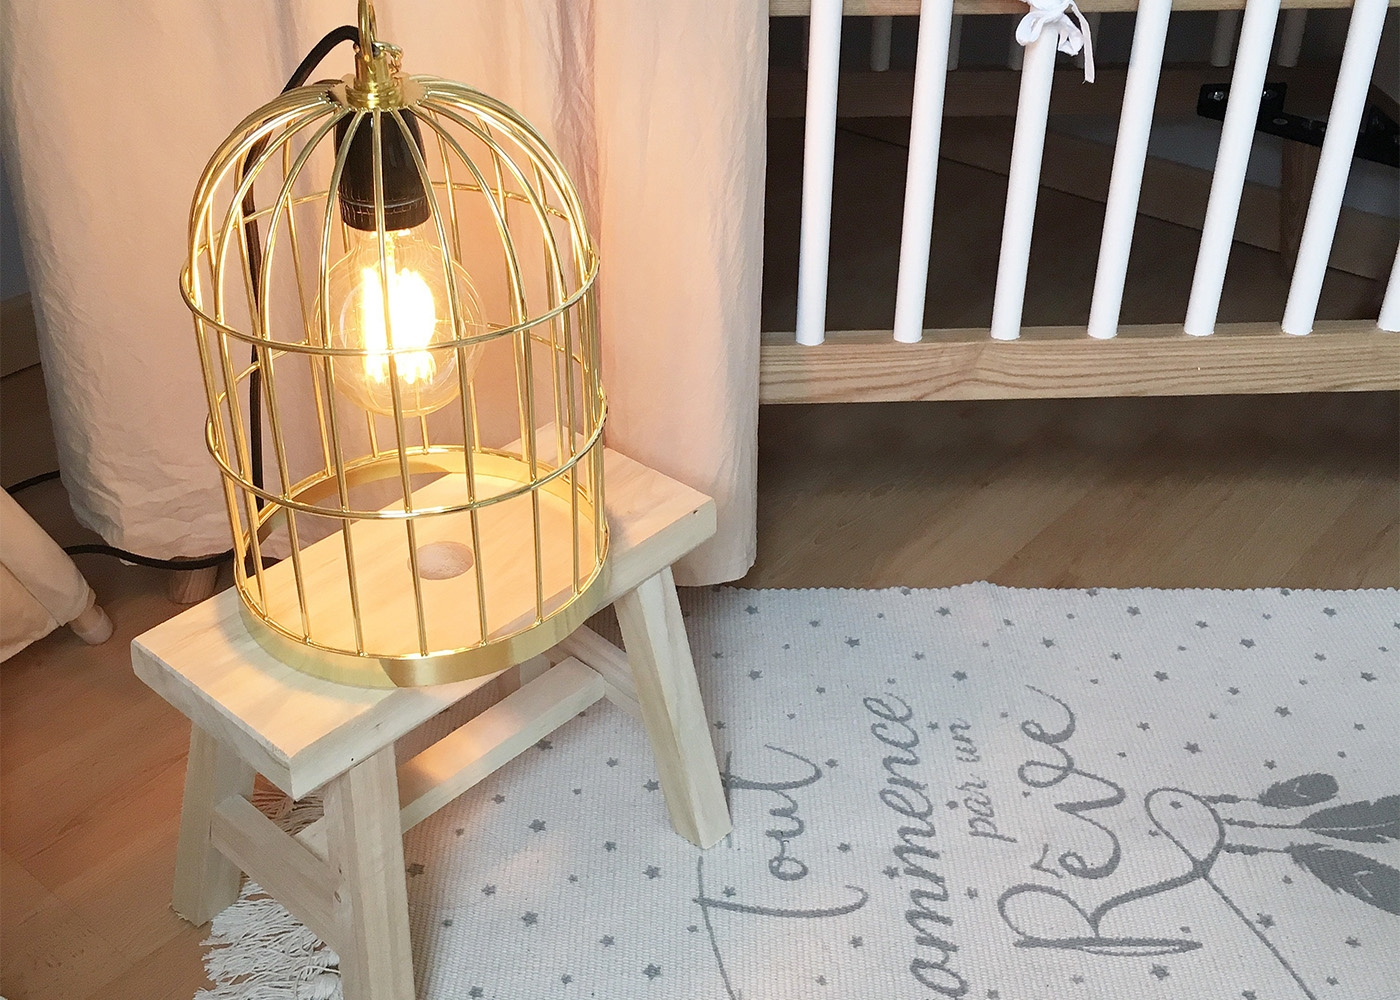 lampe design en forme de cage oiseau birdcage par filamentstyle. Black Bedroom Furniture Sets. Home Design Ideas